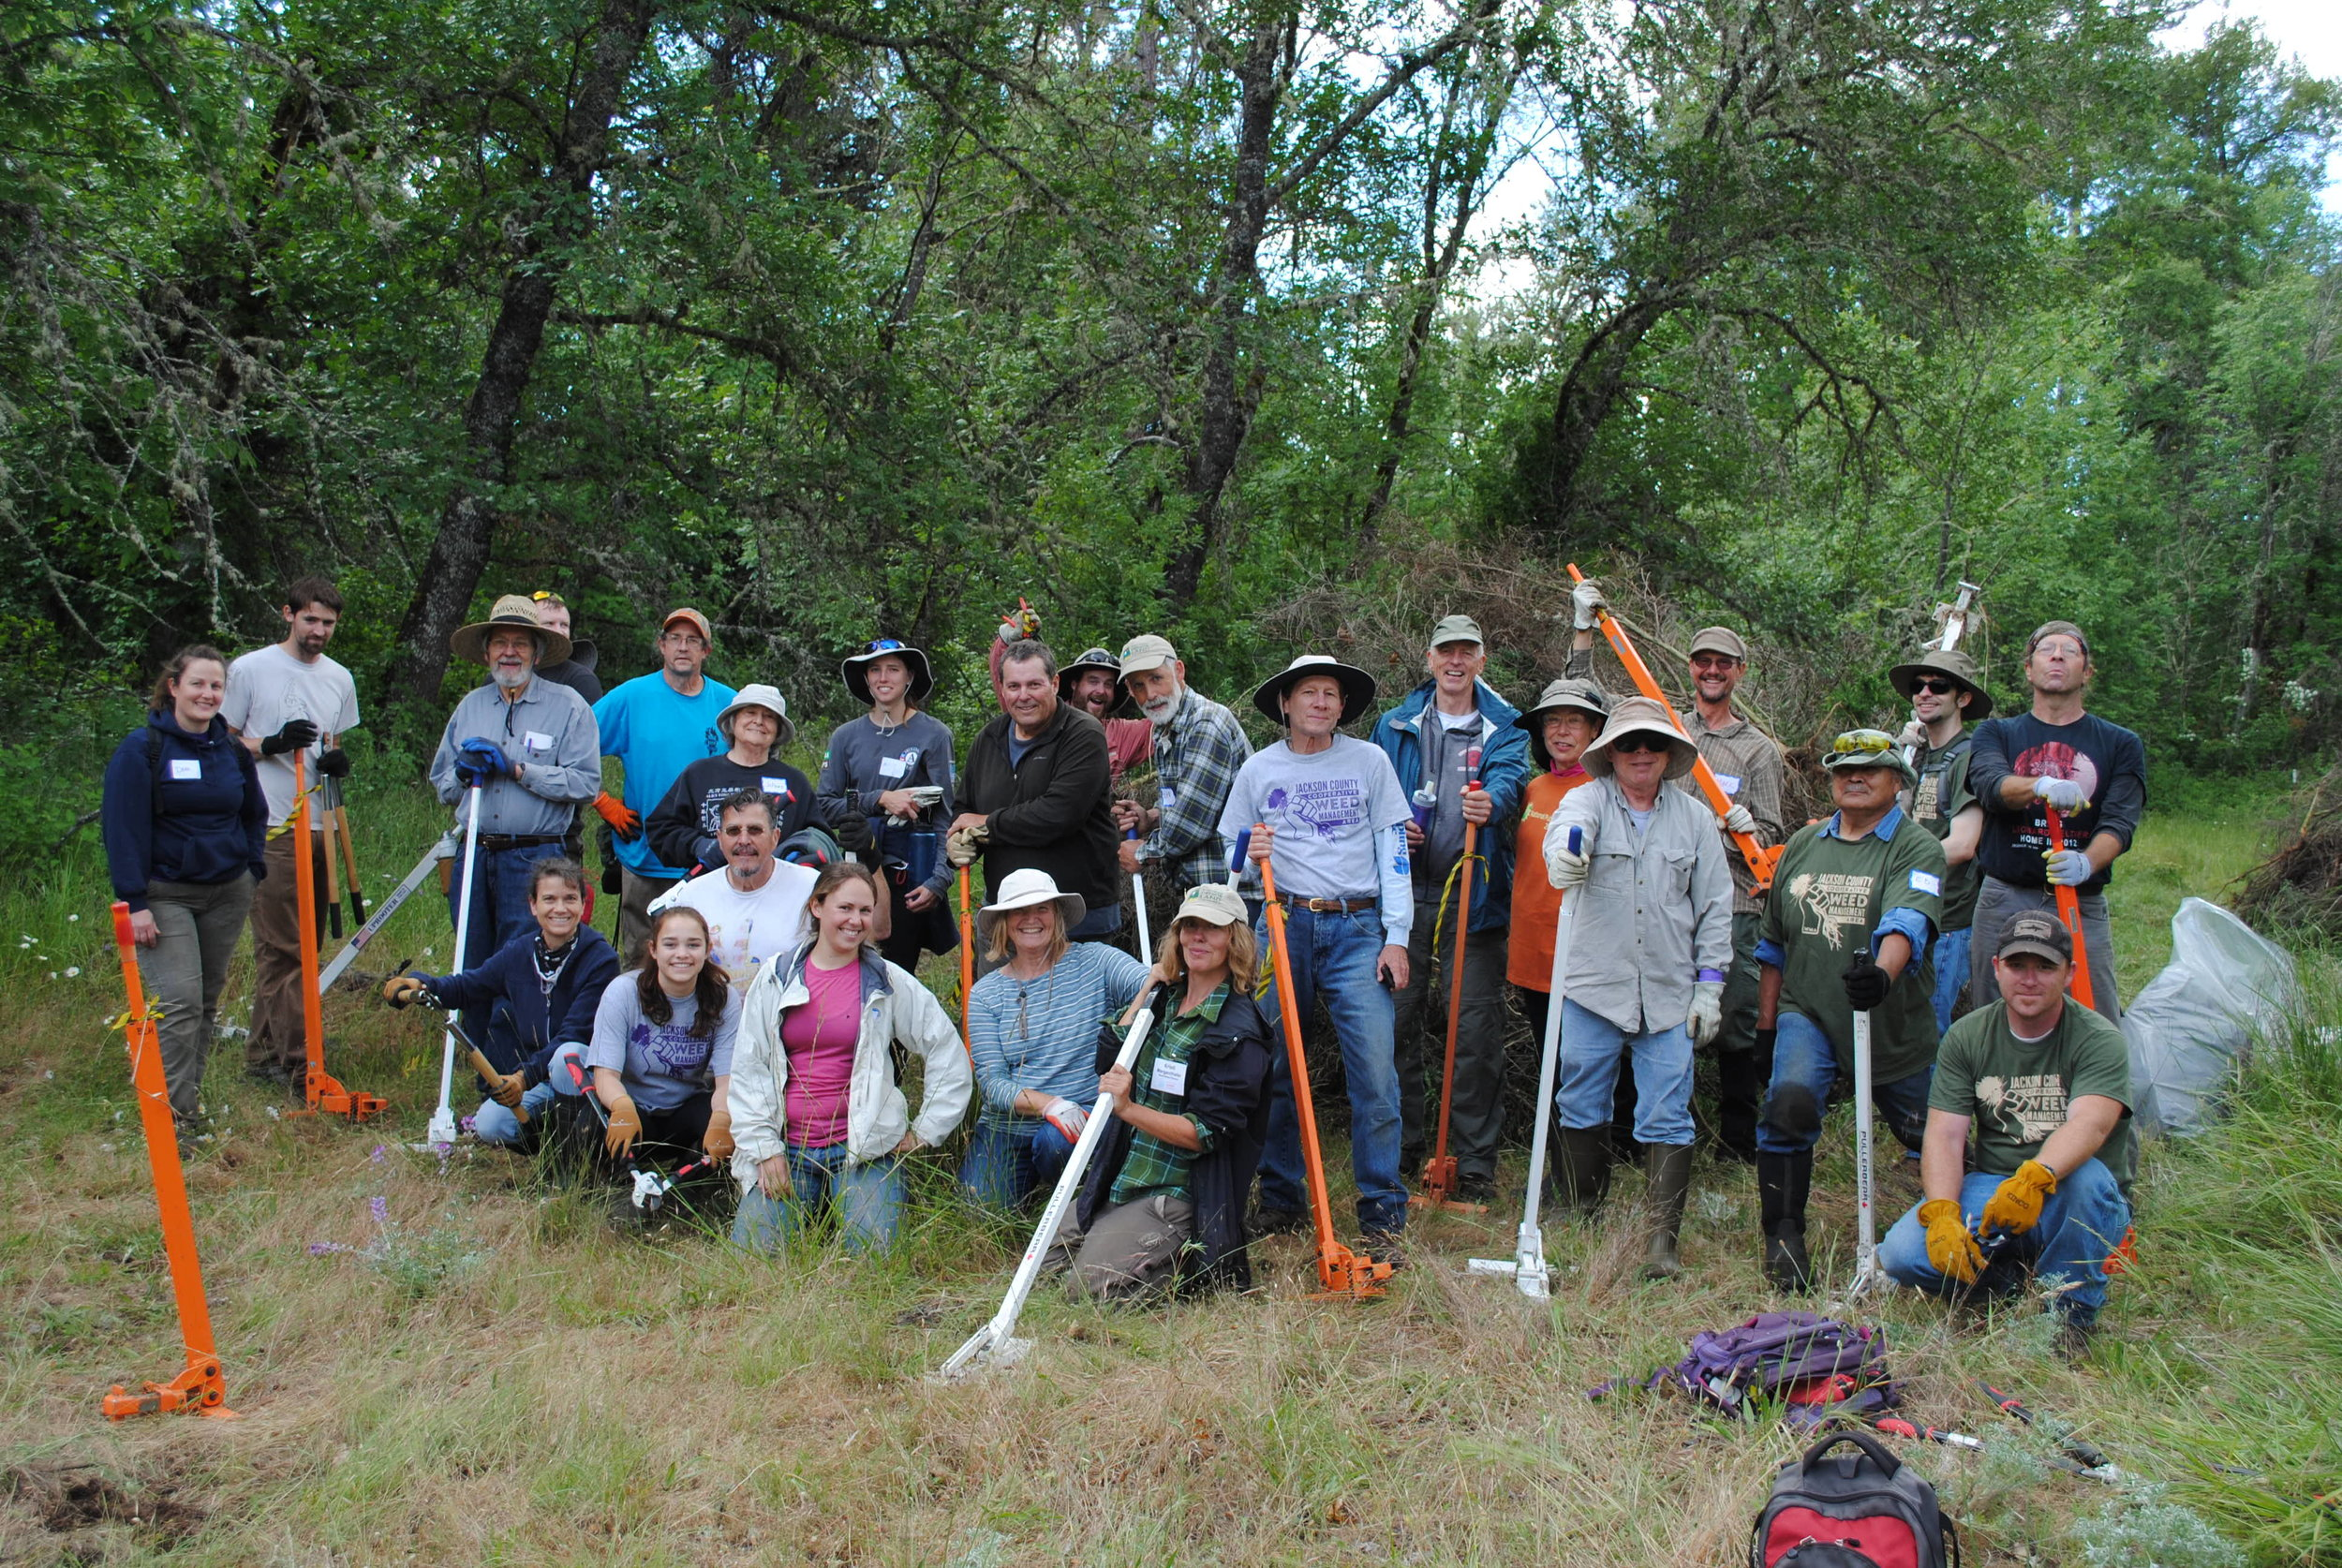 Jackson County Let's Pull Together at Rogue River Preserve